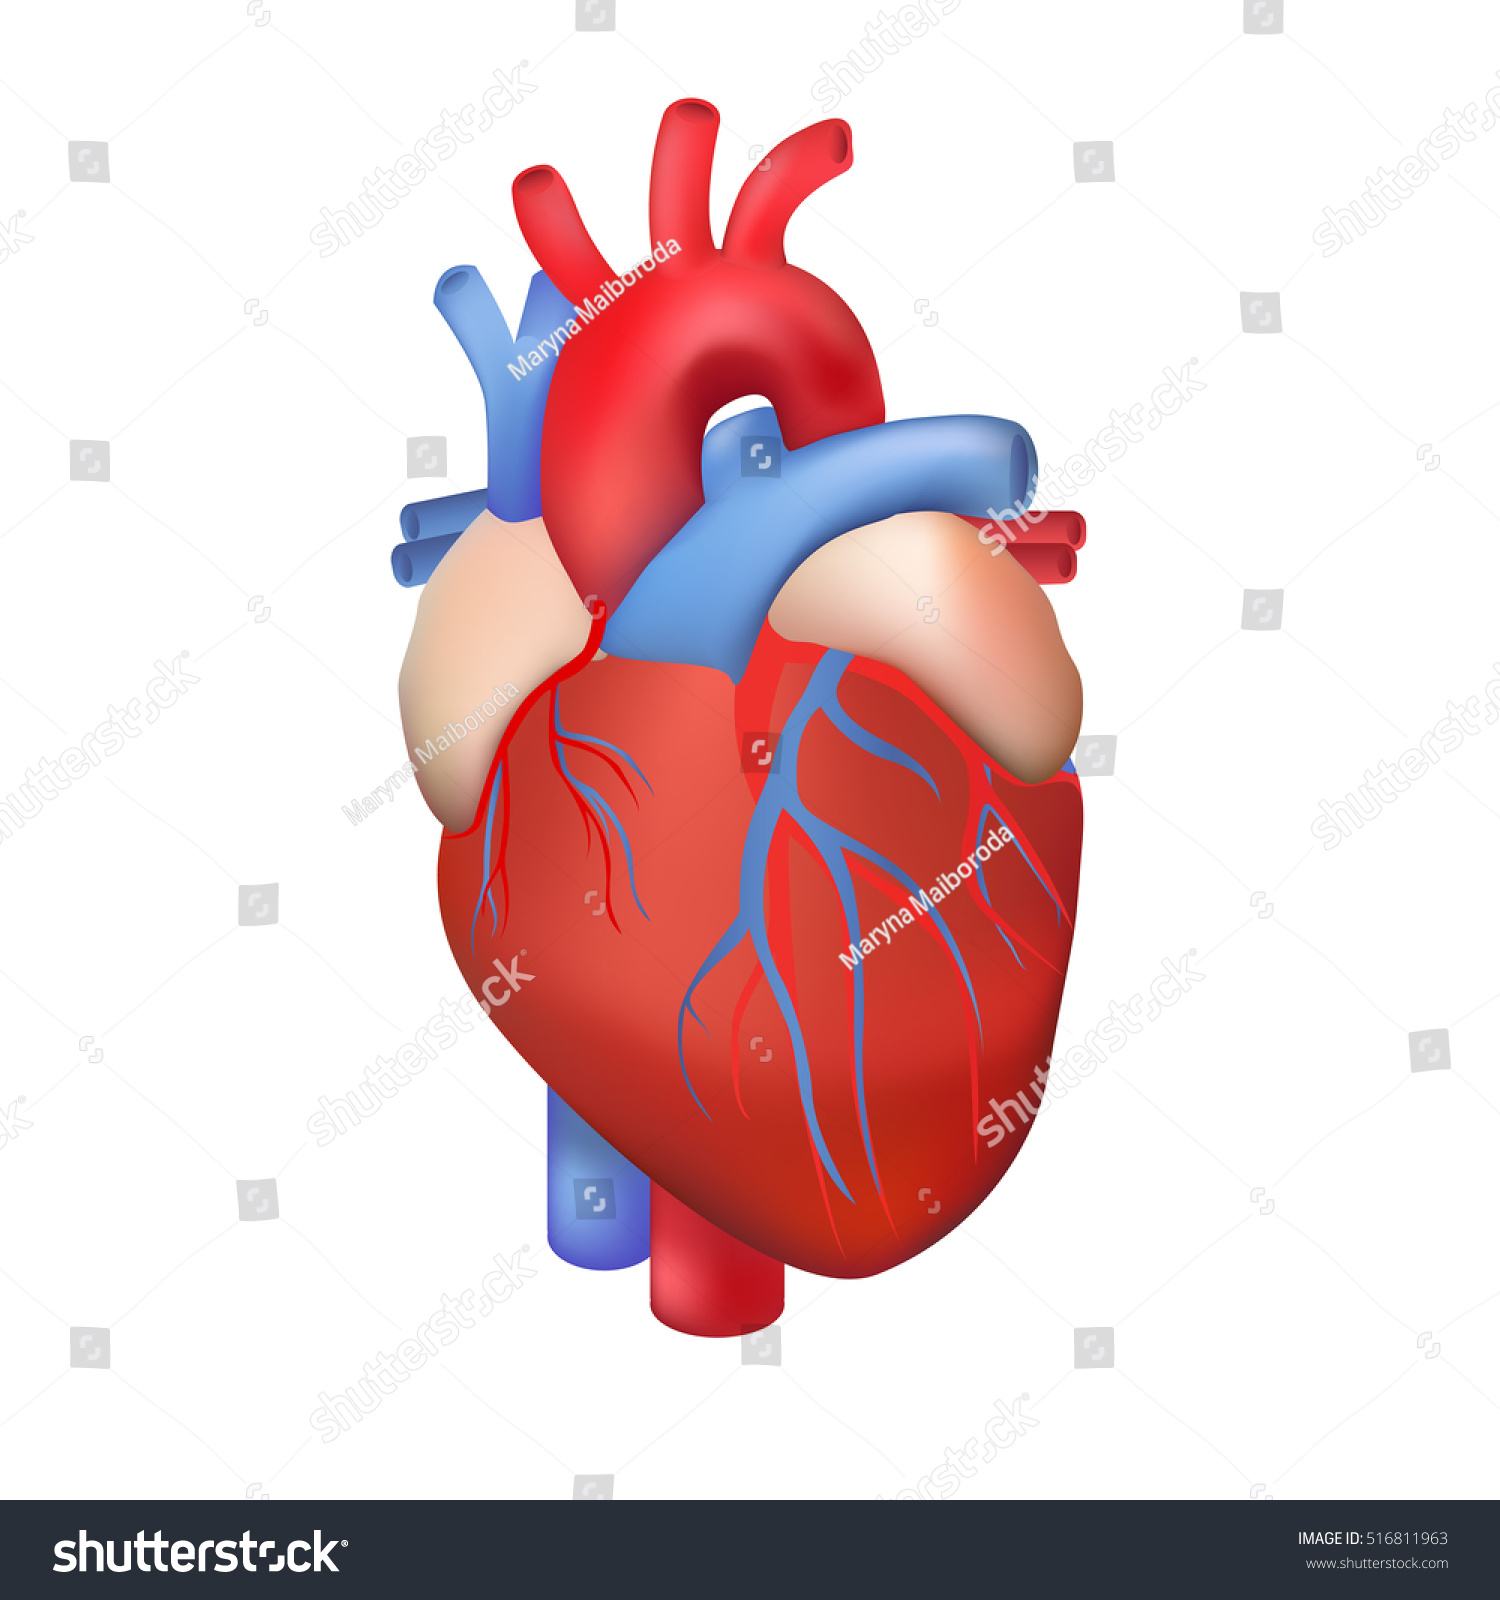 Vector Human Heart On White Background Stock Vector 516811963 ...